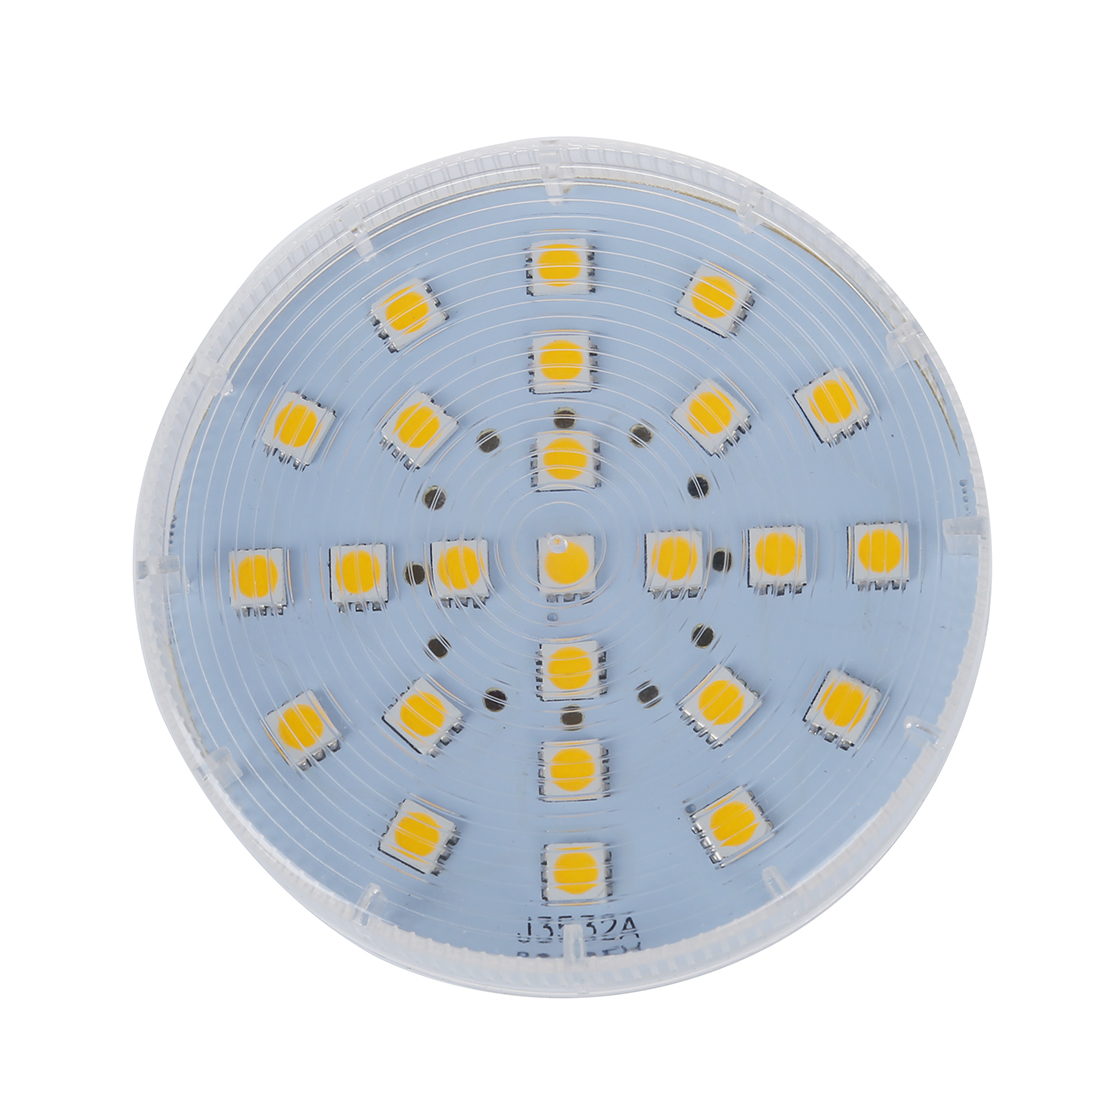 Gx53 25 5050 Smd Led Energy Saving Lamp Ac 220 240v 4w Warm White I8n4 Ebay